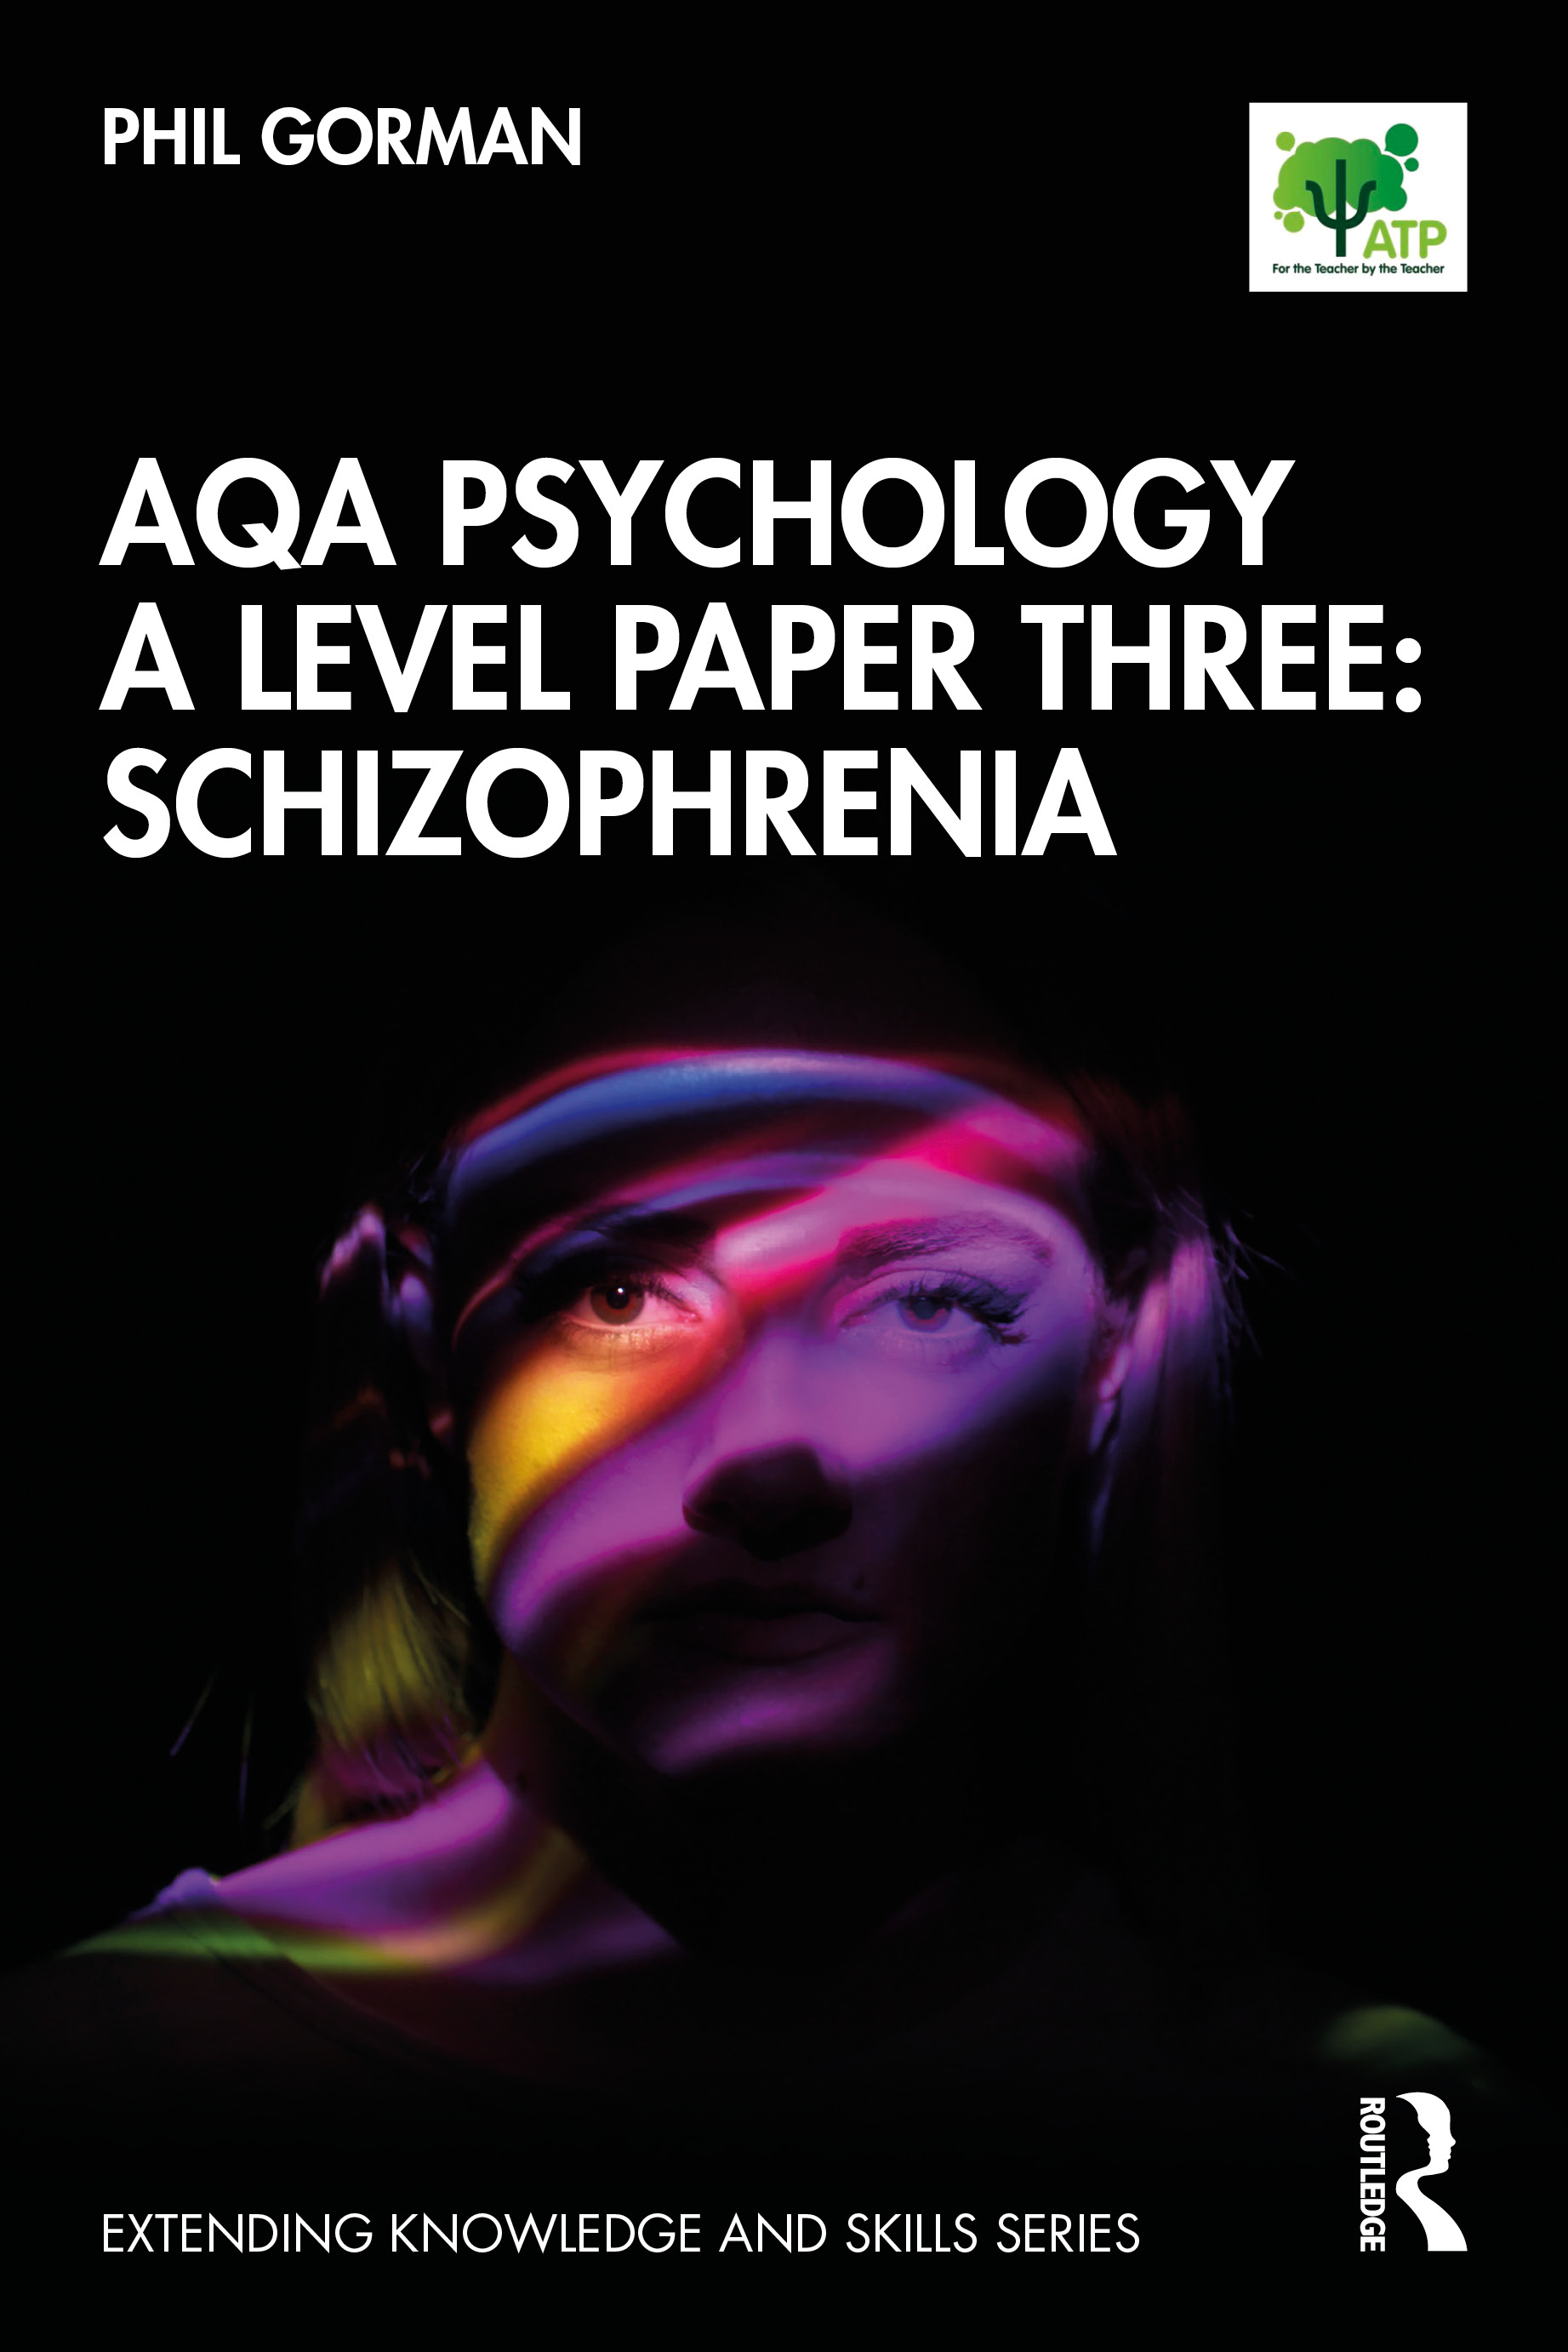 AQA Psychology A Level Paper Three: Schizophrenia book cover